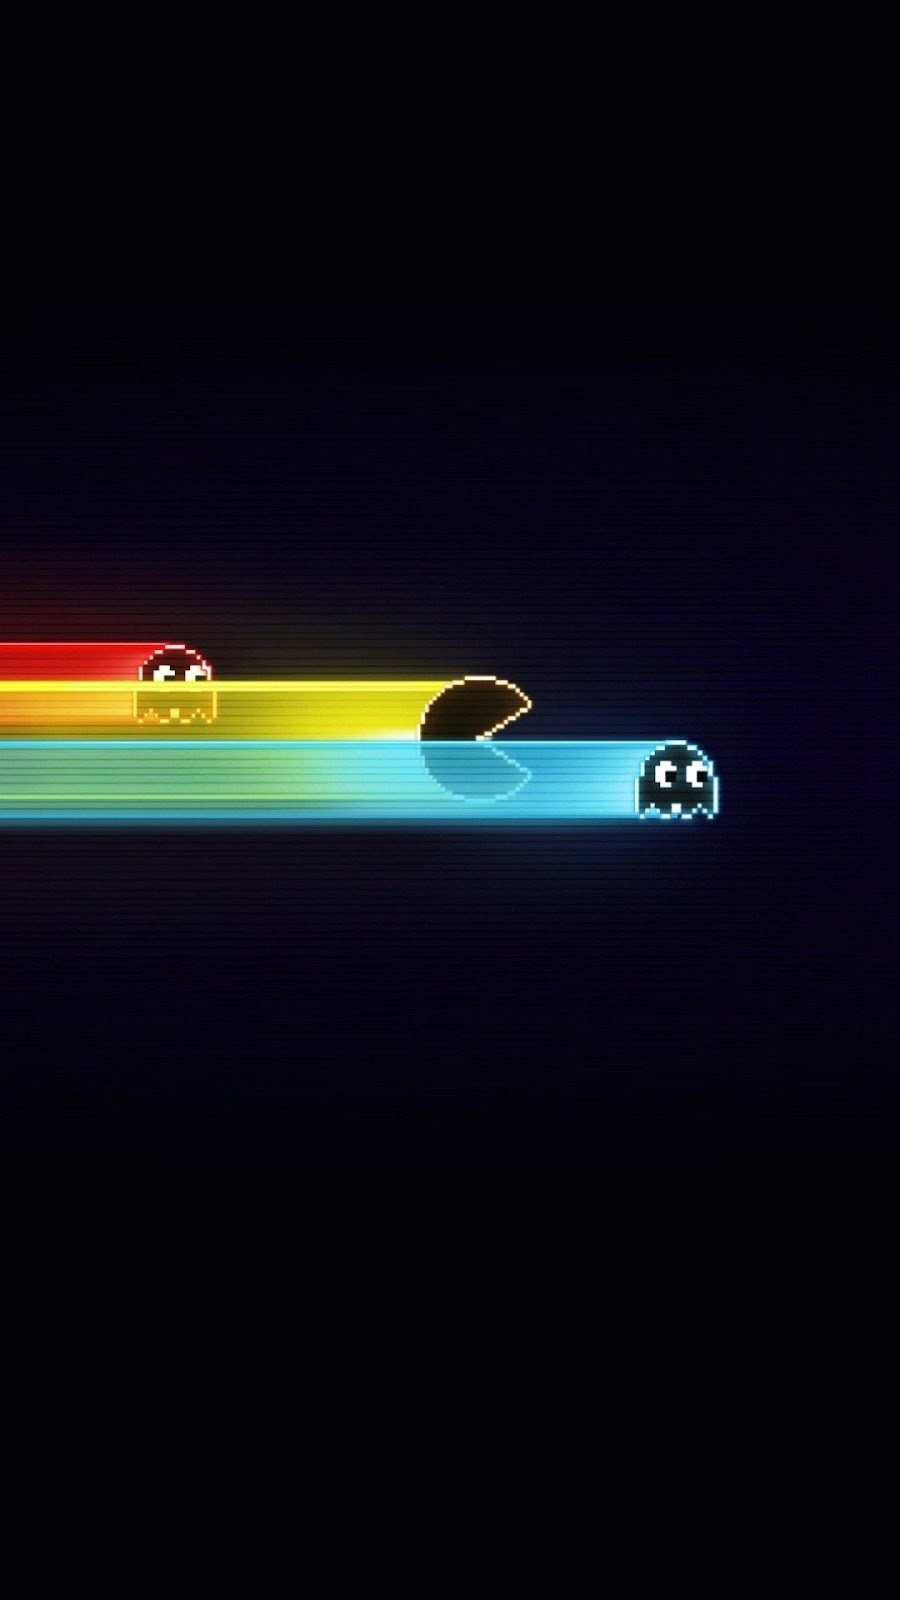 Pac Man Race Iphone 7 Iphone 7 Plus Wallpaper Hd Iphone 7